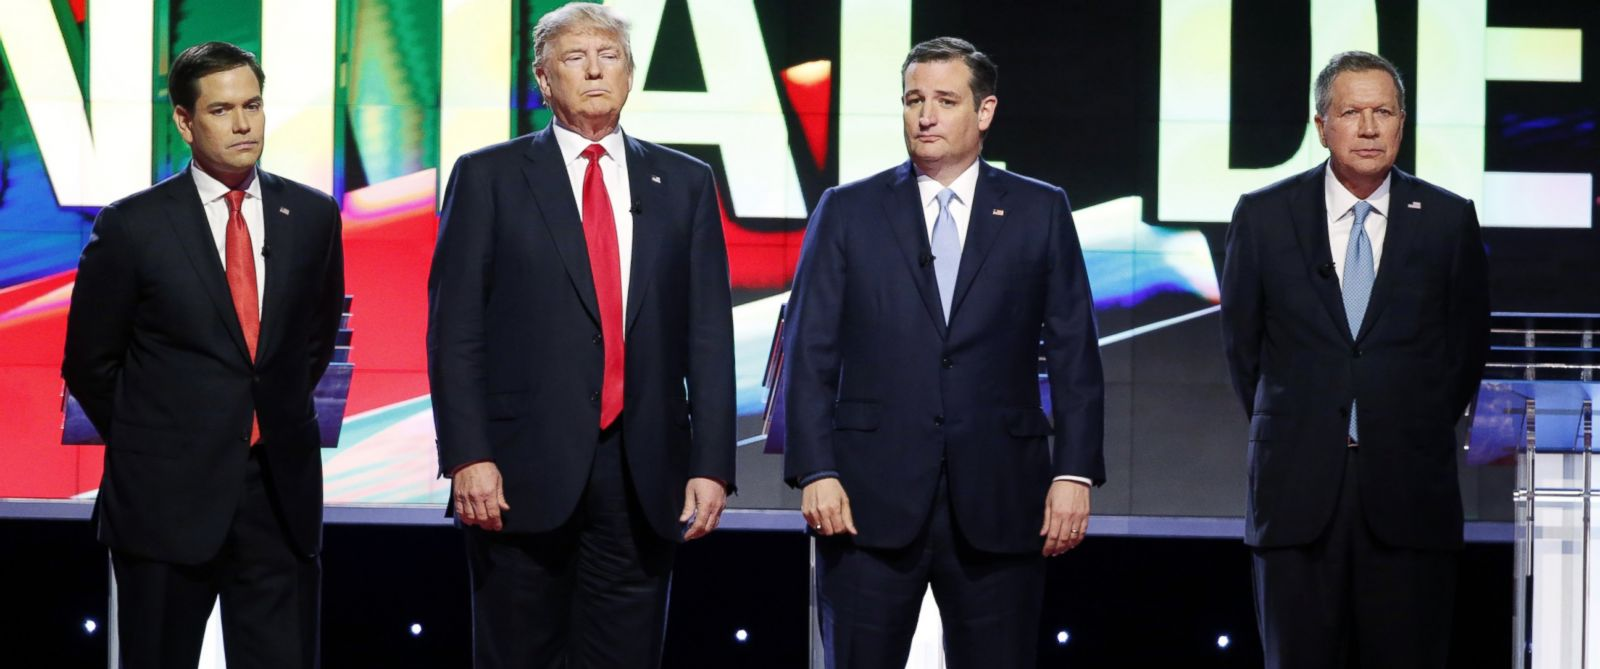 PHOTO: Republican presidential candidates, Sen. Marco Rubio, Donald Trump, Sen. Ted Cruz and Ohio Gov. John Kasich stand together before the start of the Republican presidential debate at the University of Miami, March 10, 2016, in Coral Gables, Fla.